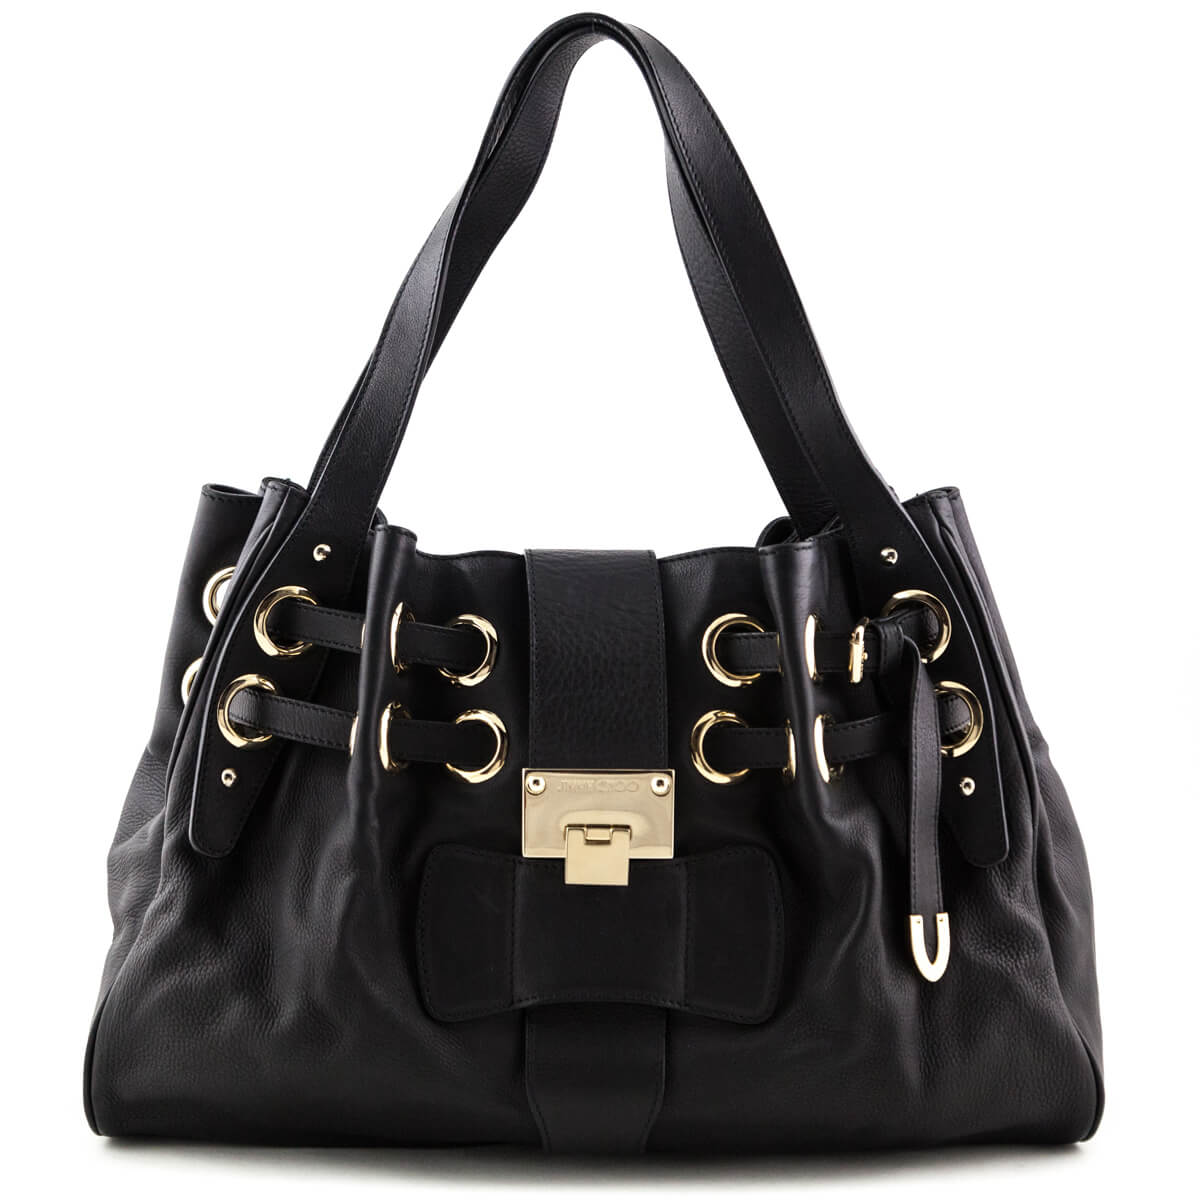 3467a09ee29 Jimmy Choo Black Ramona Shoulder Bag - LOVE that BAG - Preowned Authentic Designer  Handbags ...